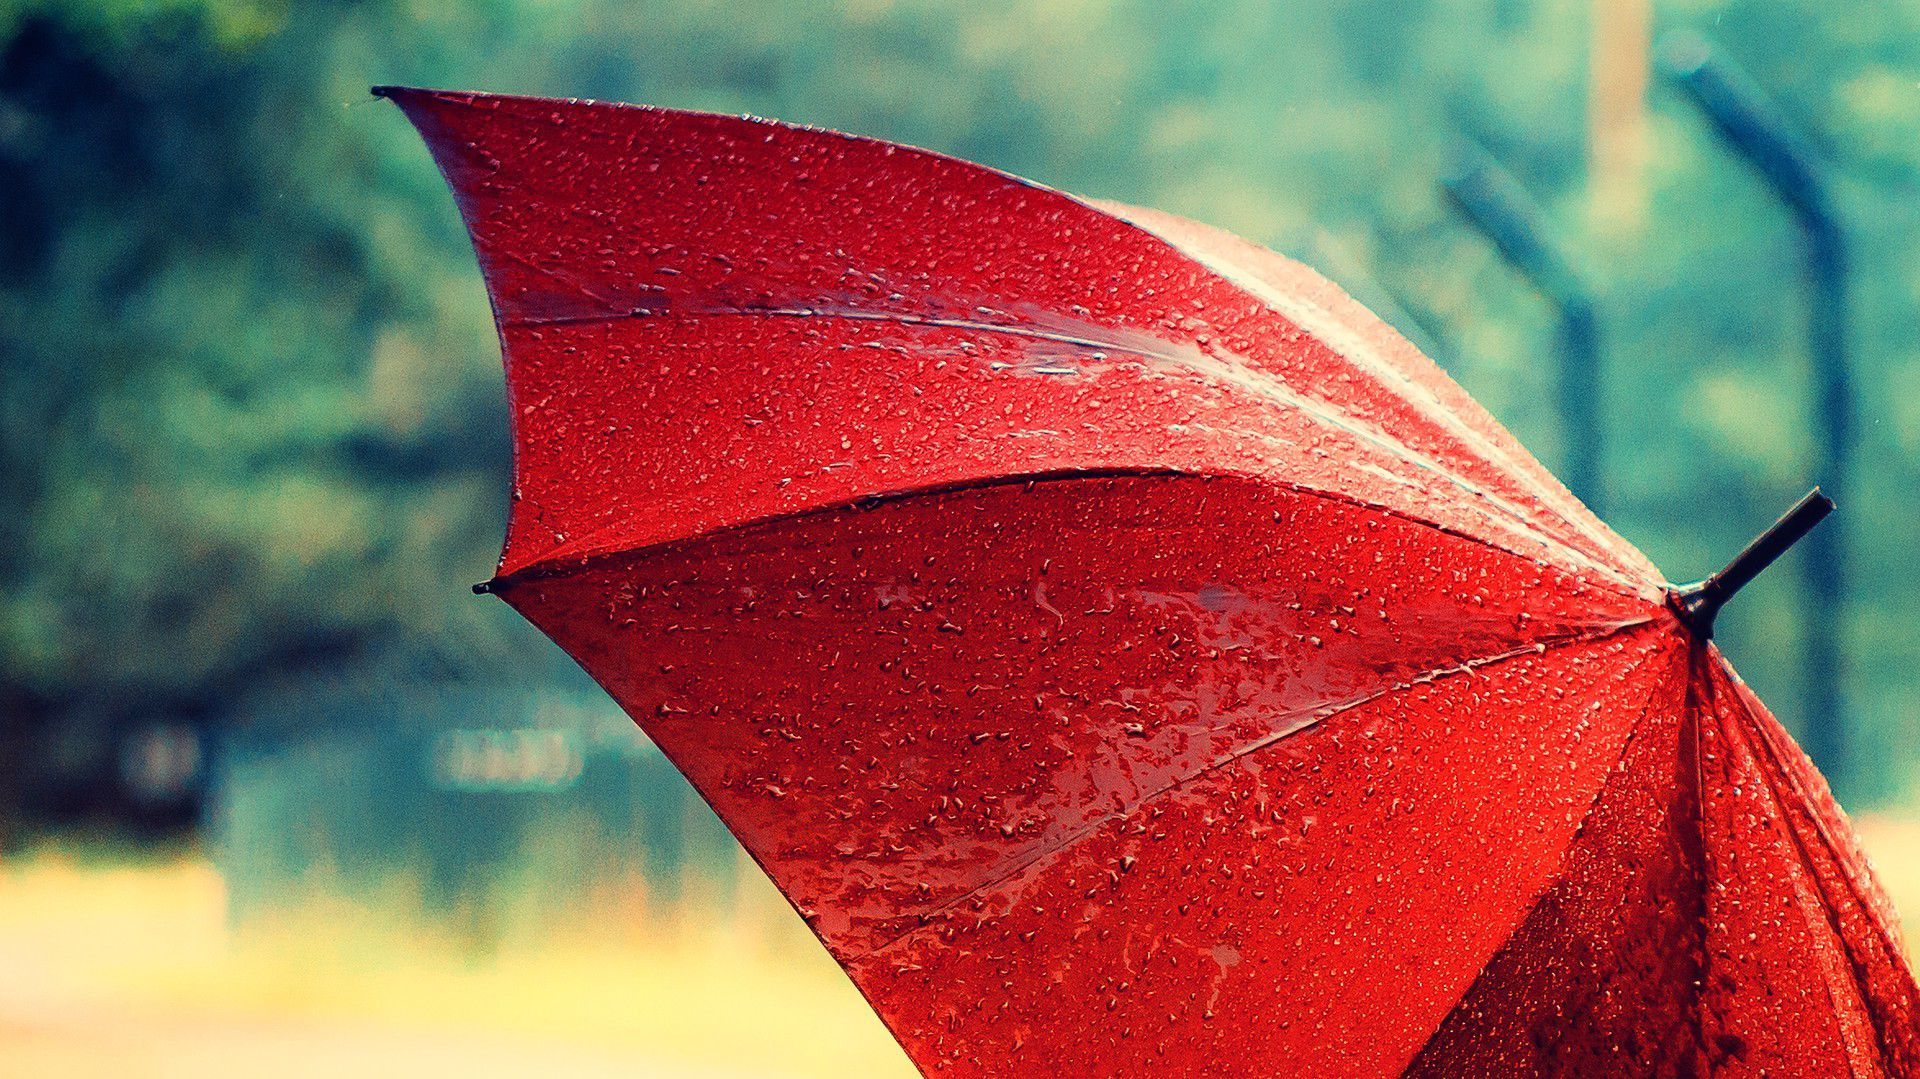 Pin By Anne Comer On R D Rain Wallpapers Red Umbrella Umbrella